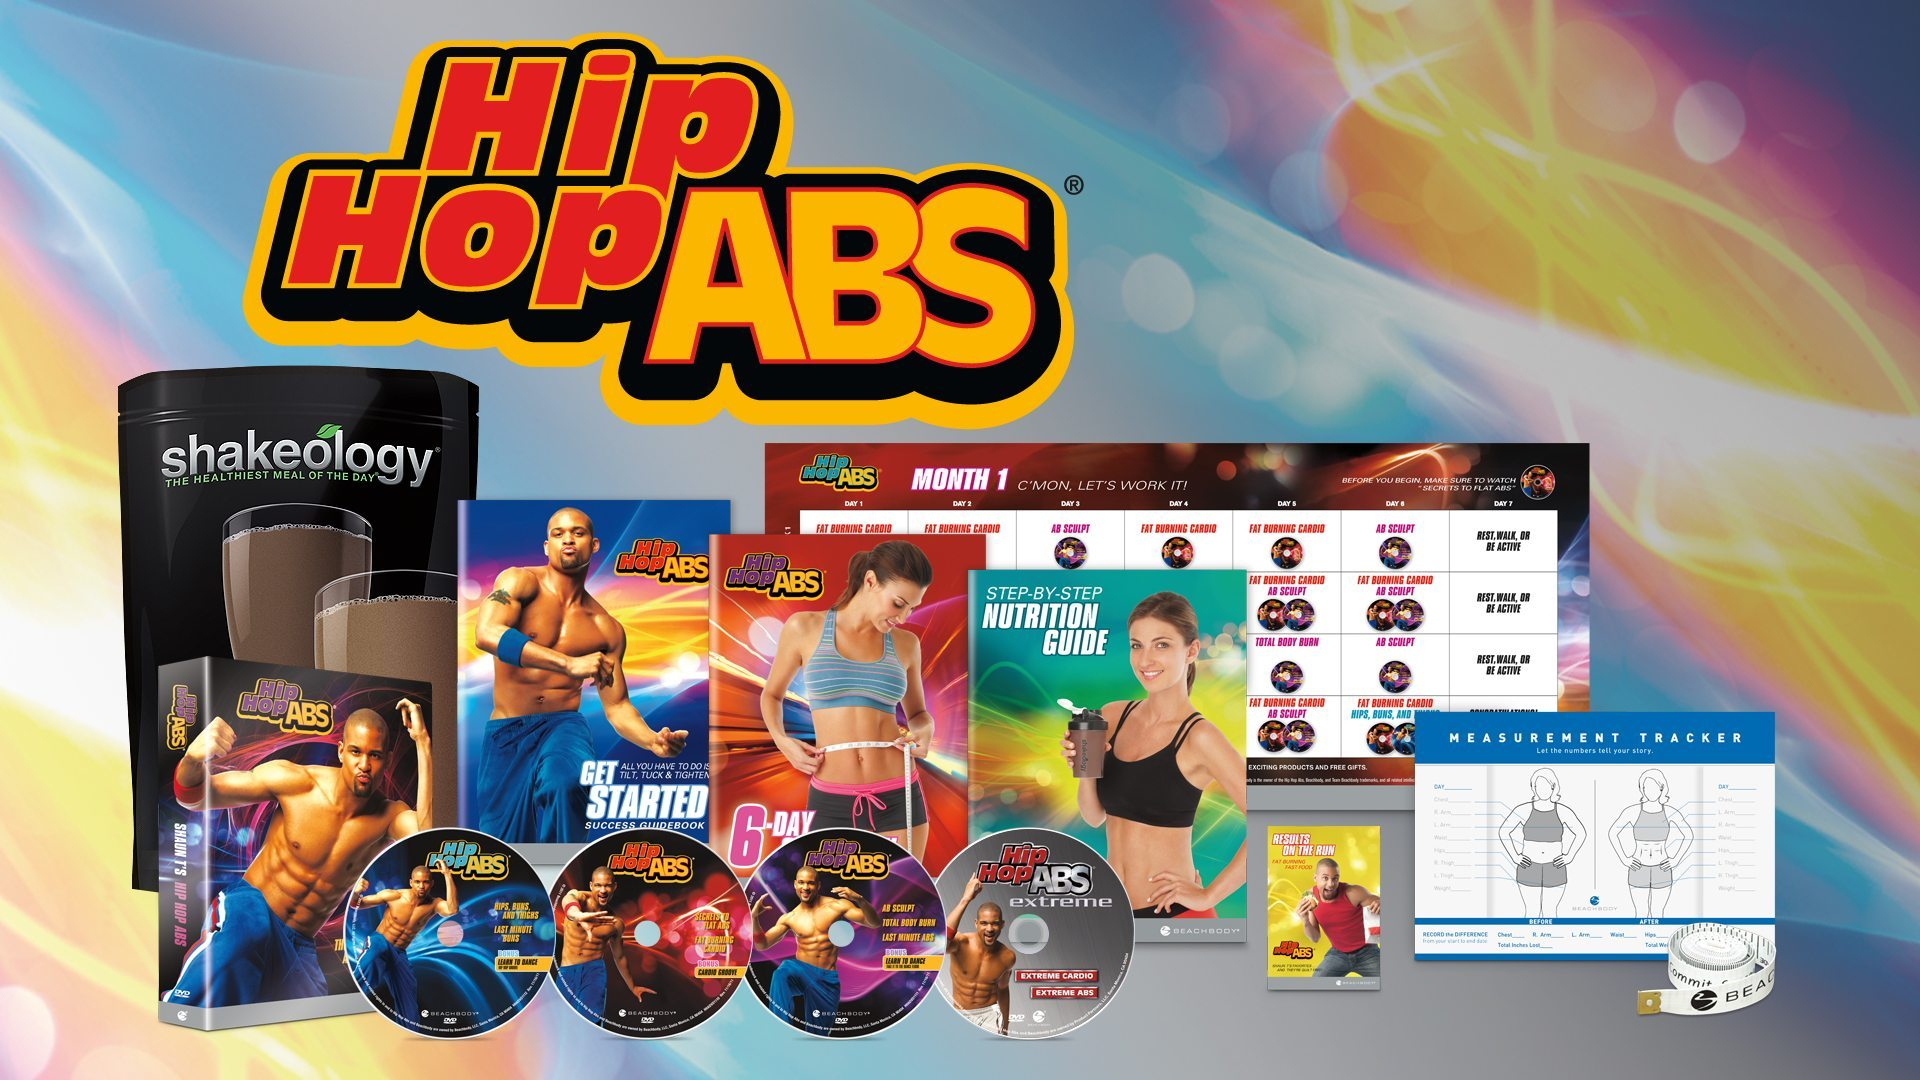 Are You A Middle Ager Wanting To Ease Into Fitness? Do Hip with Hip Hop Abs Calendar